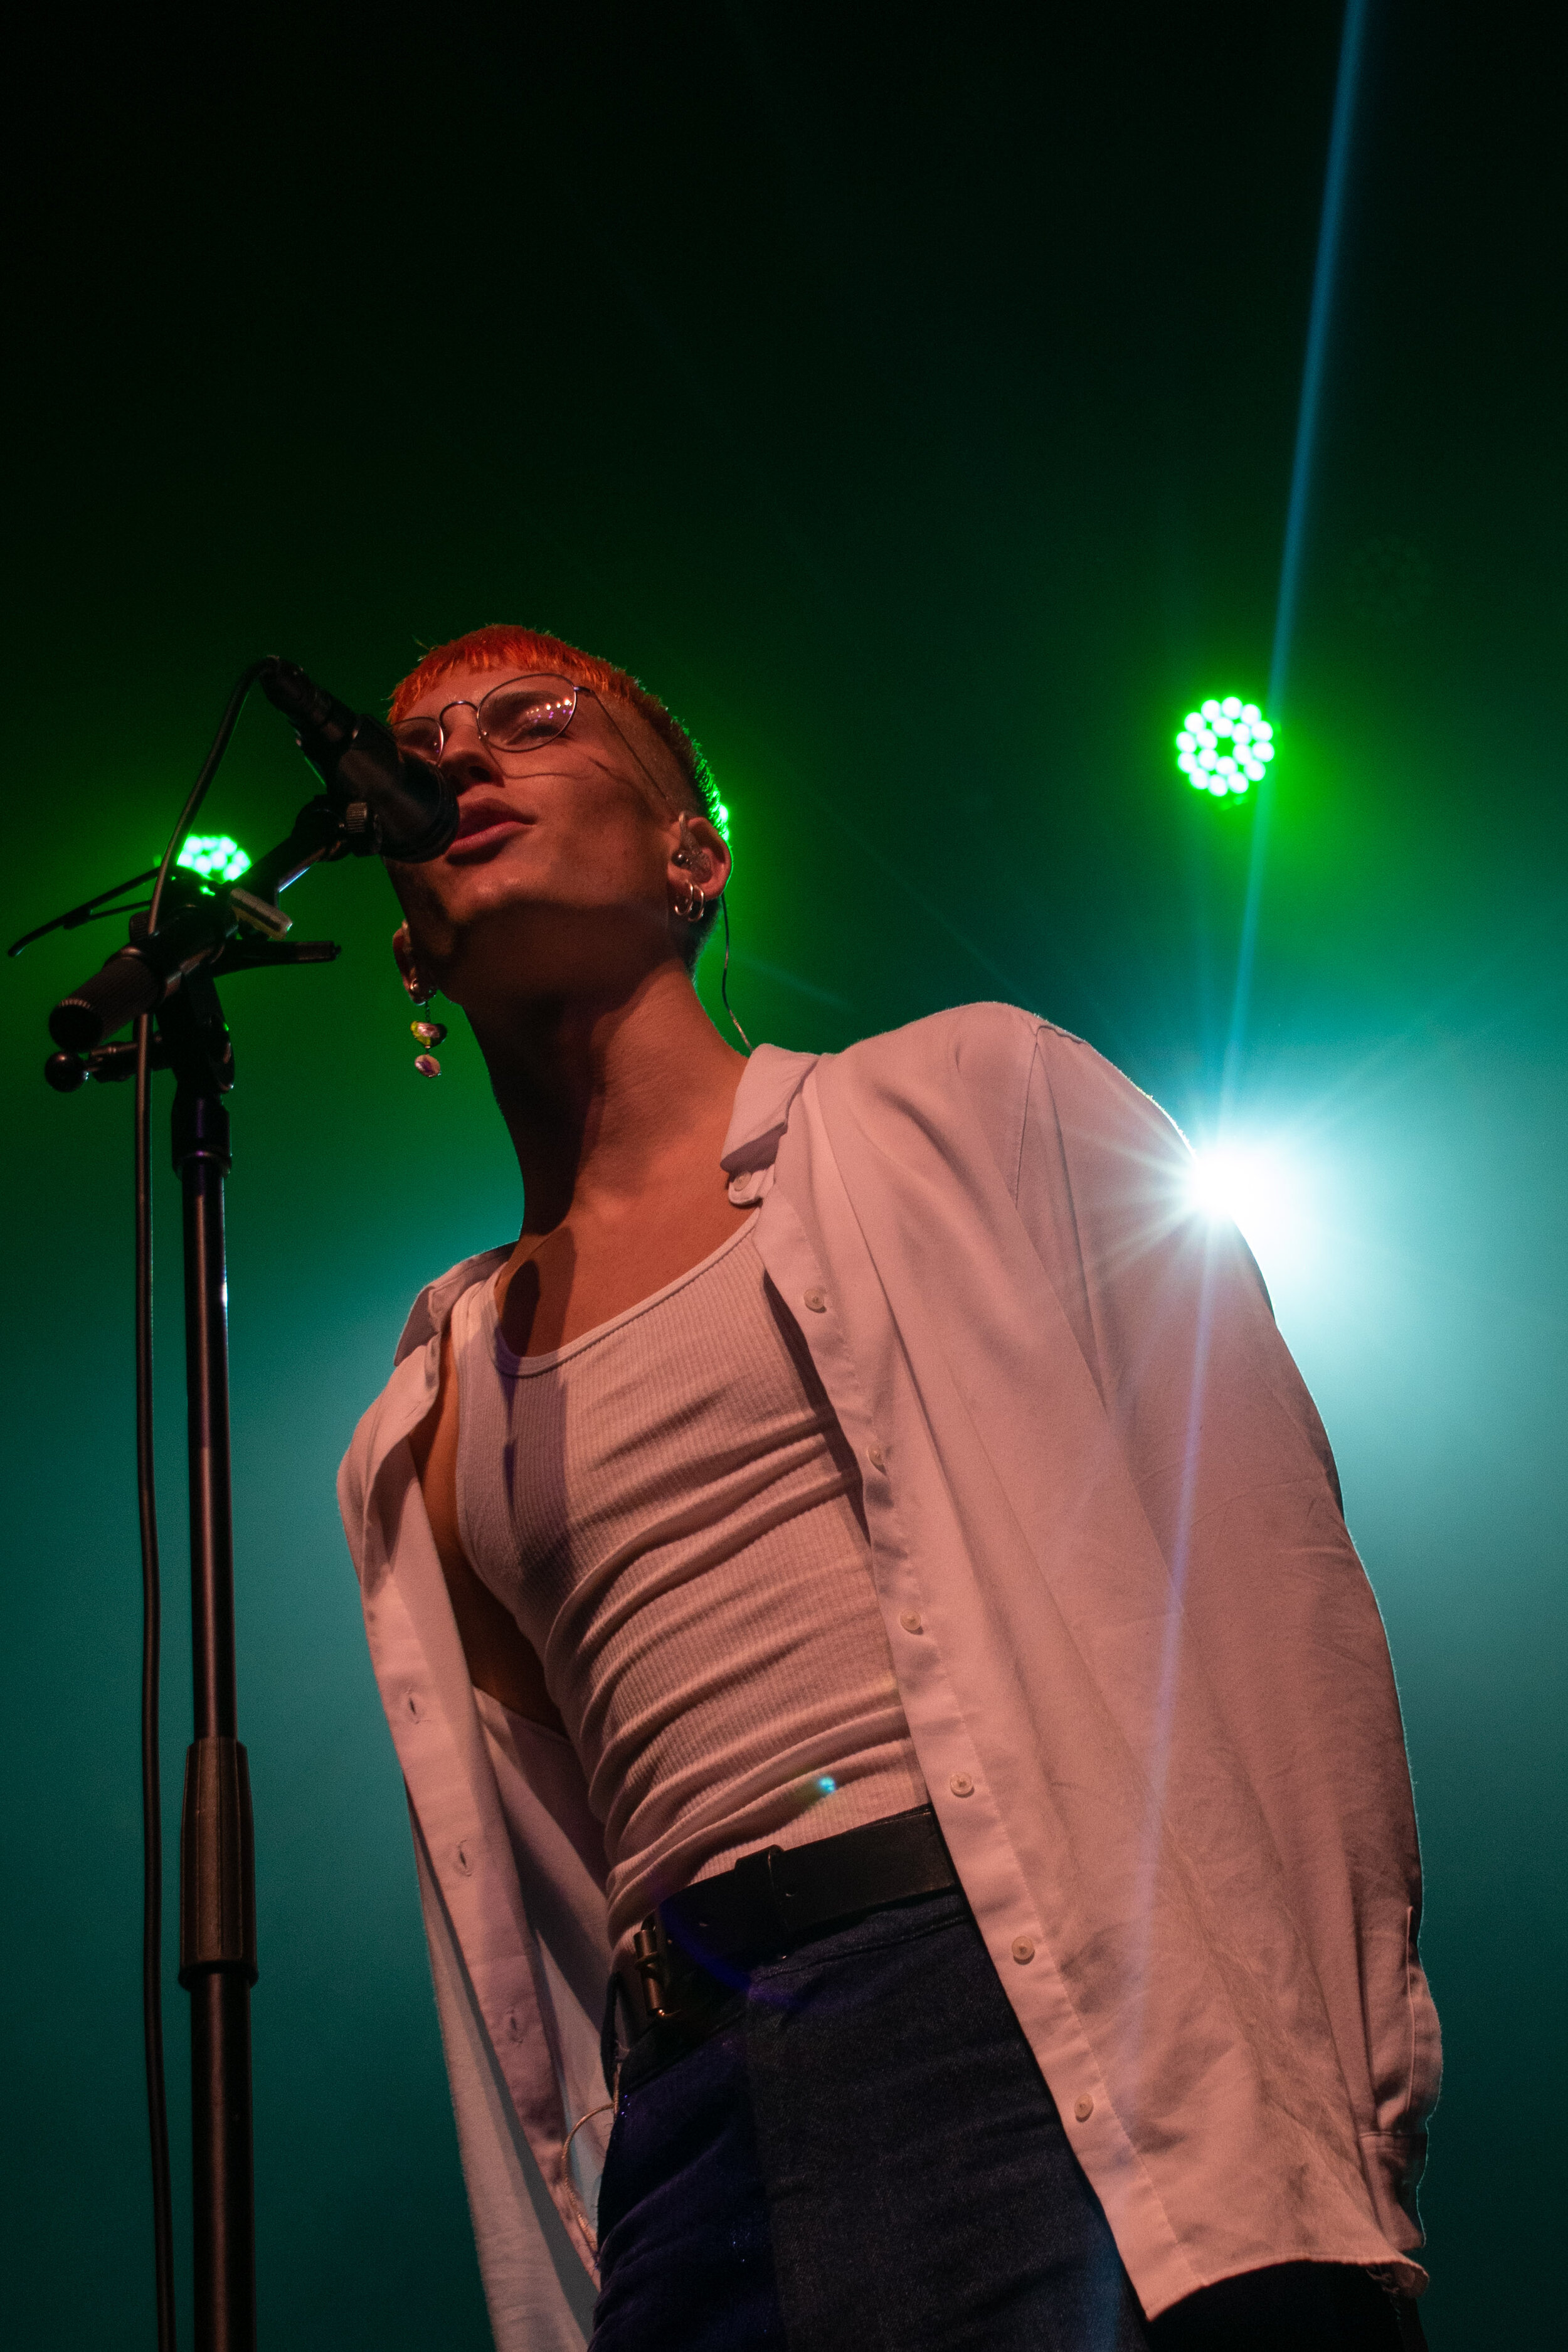 """Gus Dapperton's performance at The Fonda on Oct. 19 was the ninth show of the United States leg of his """"Where People People Go To Read"""" Tour. ( Jackie Sedley / Culture Editor)"""